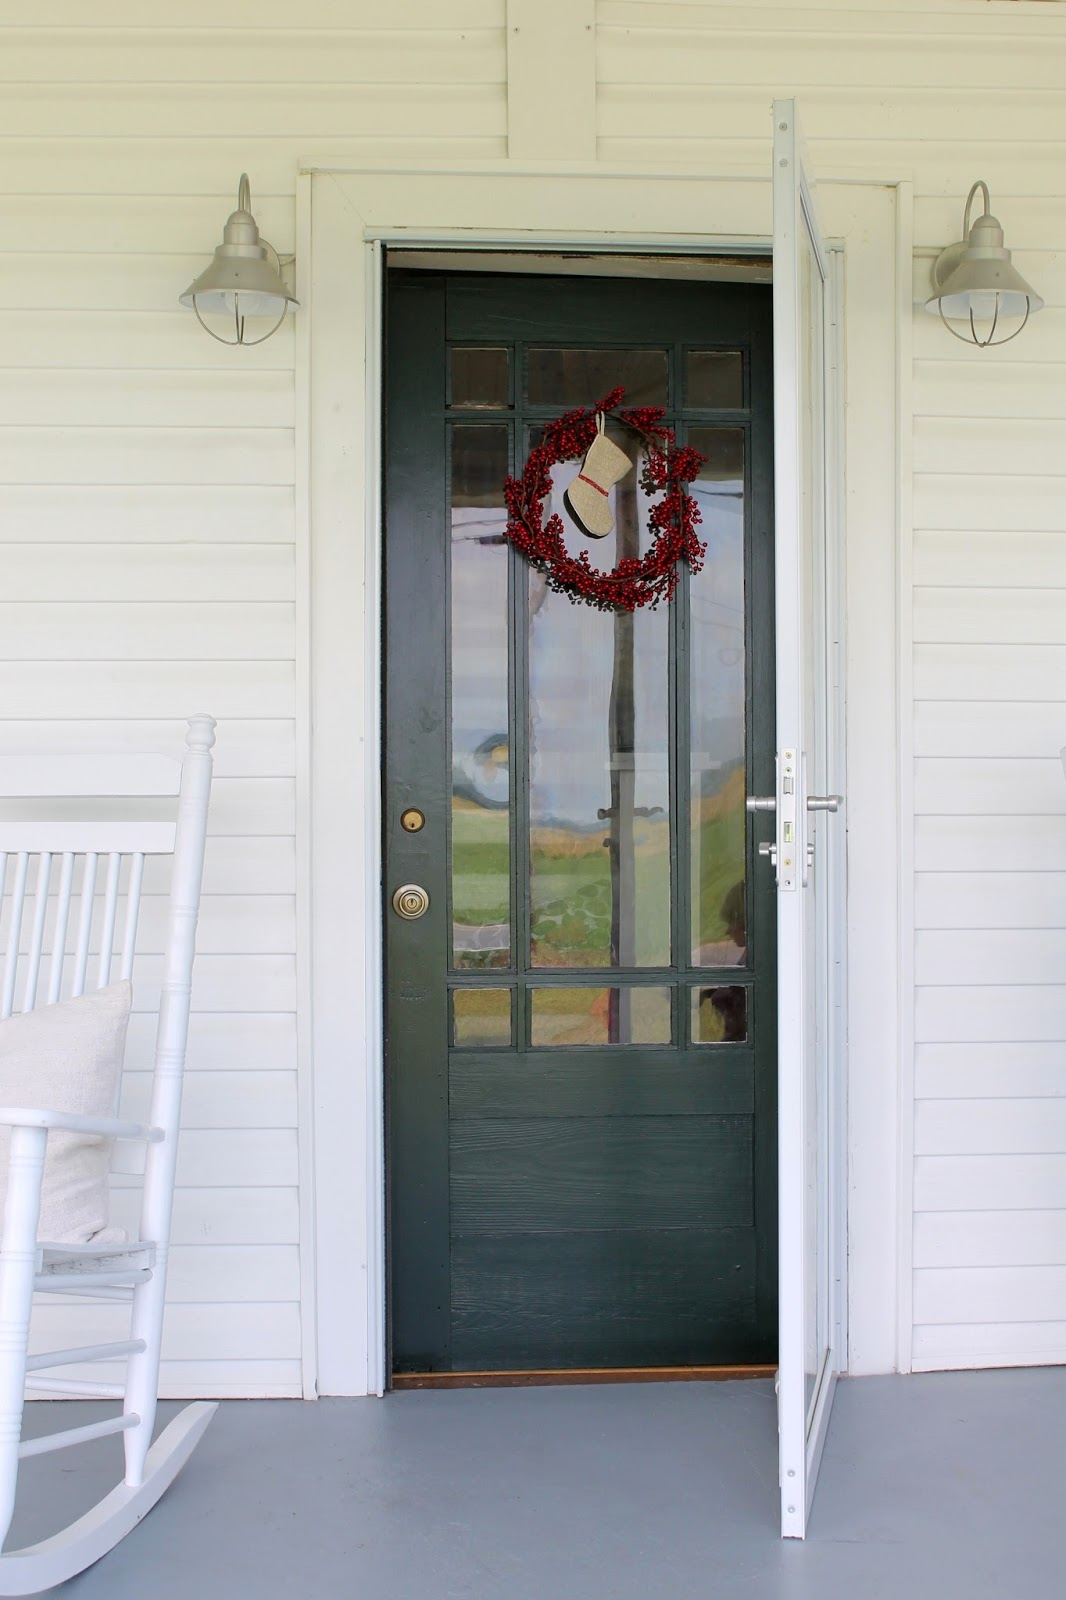 I Found This Old Picture Of Our Original Door. : ) Unfortunately, To Help  Mitigate The Draft And To Protect The Original Glass, A Storm Door Needed  To Be ...